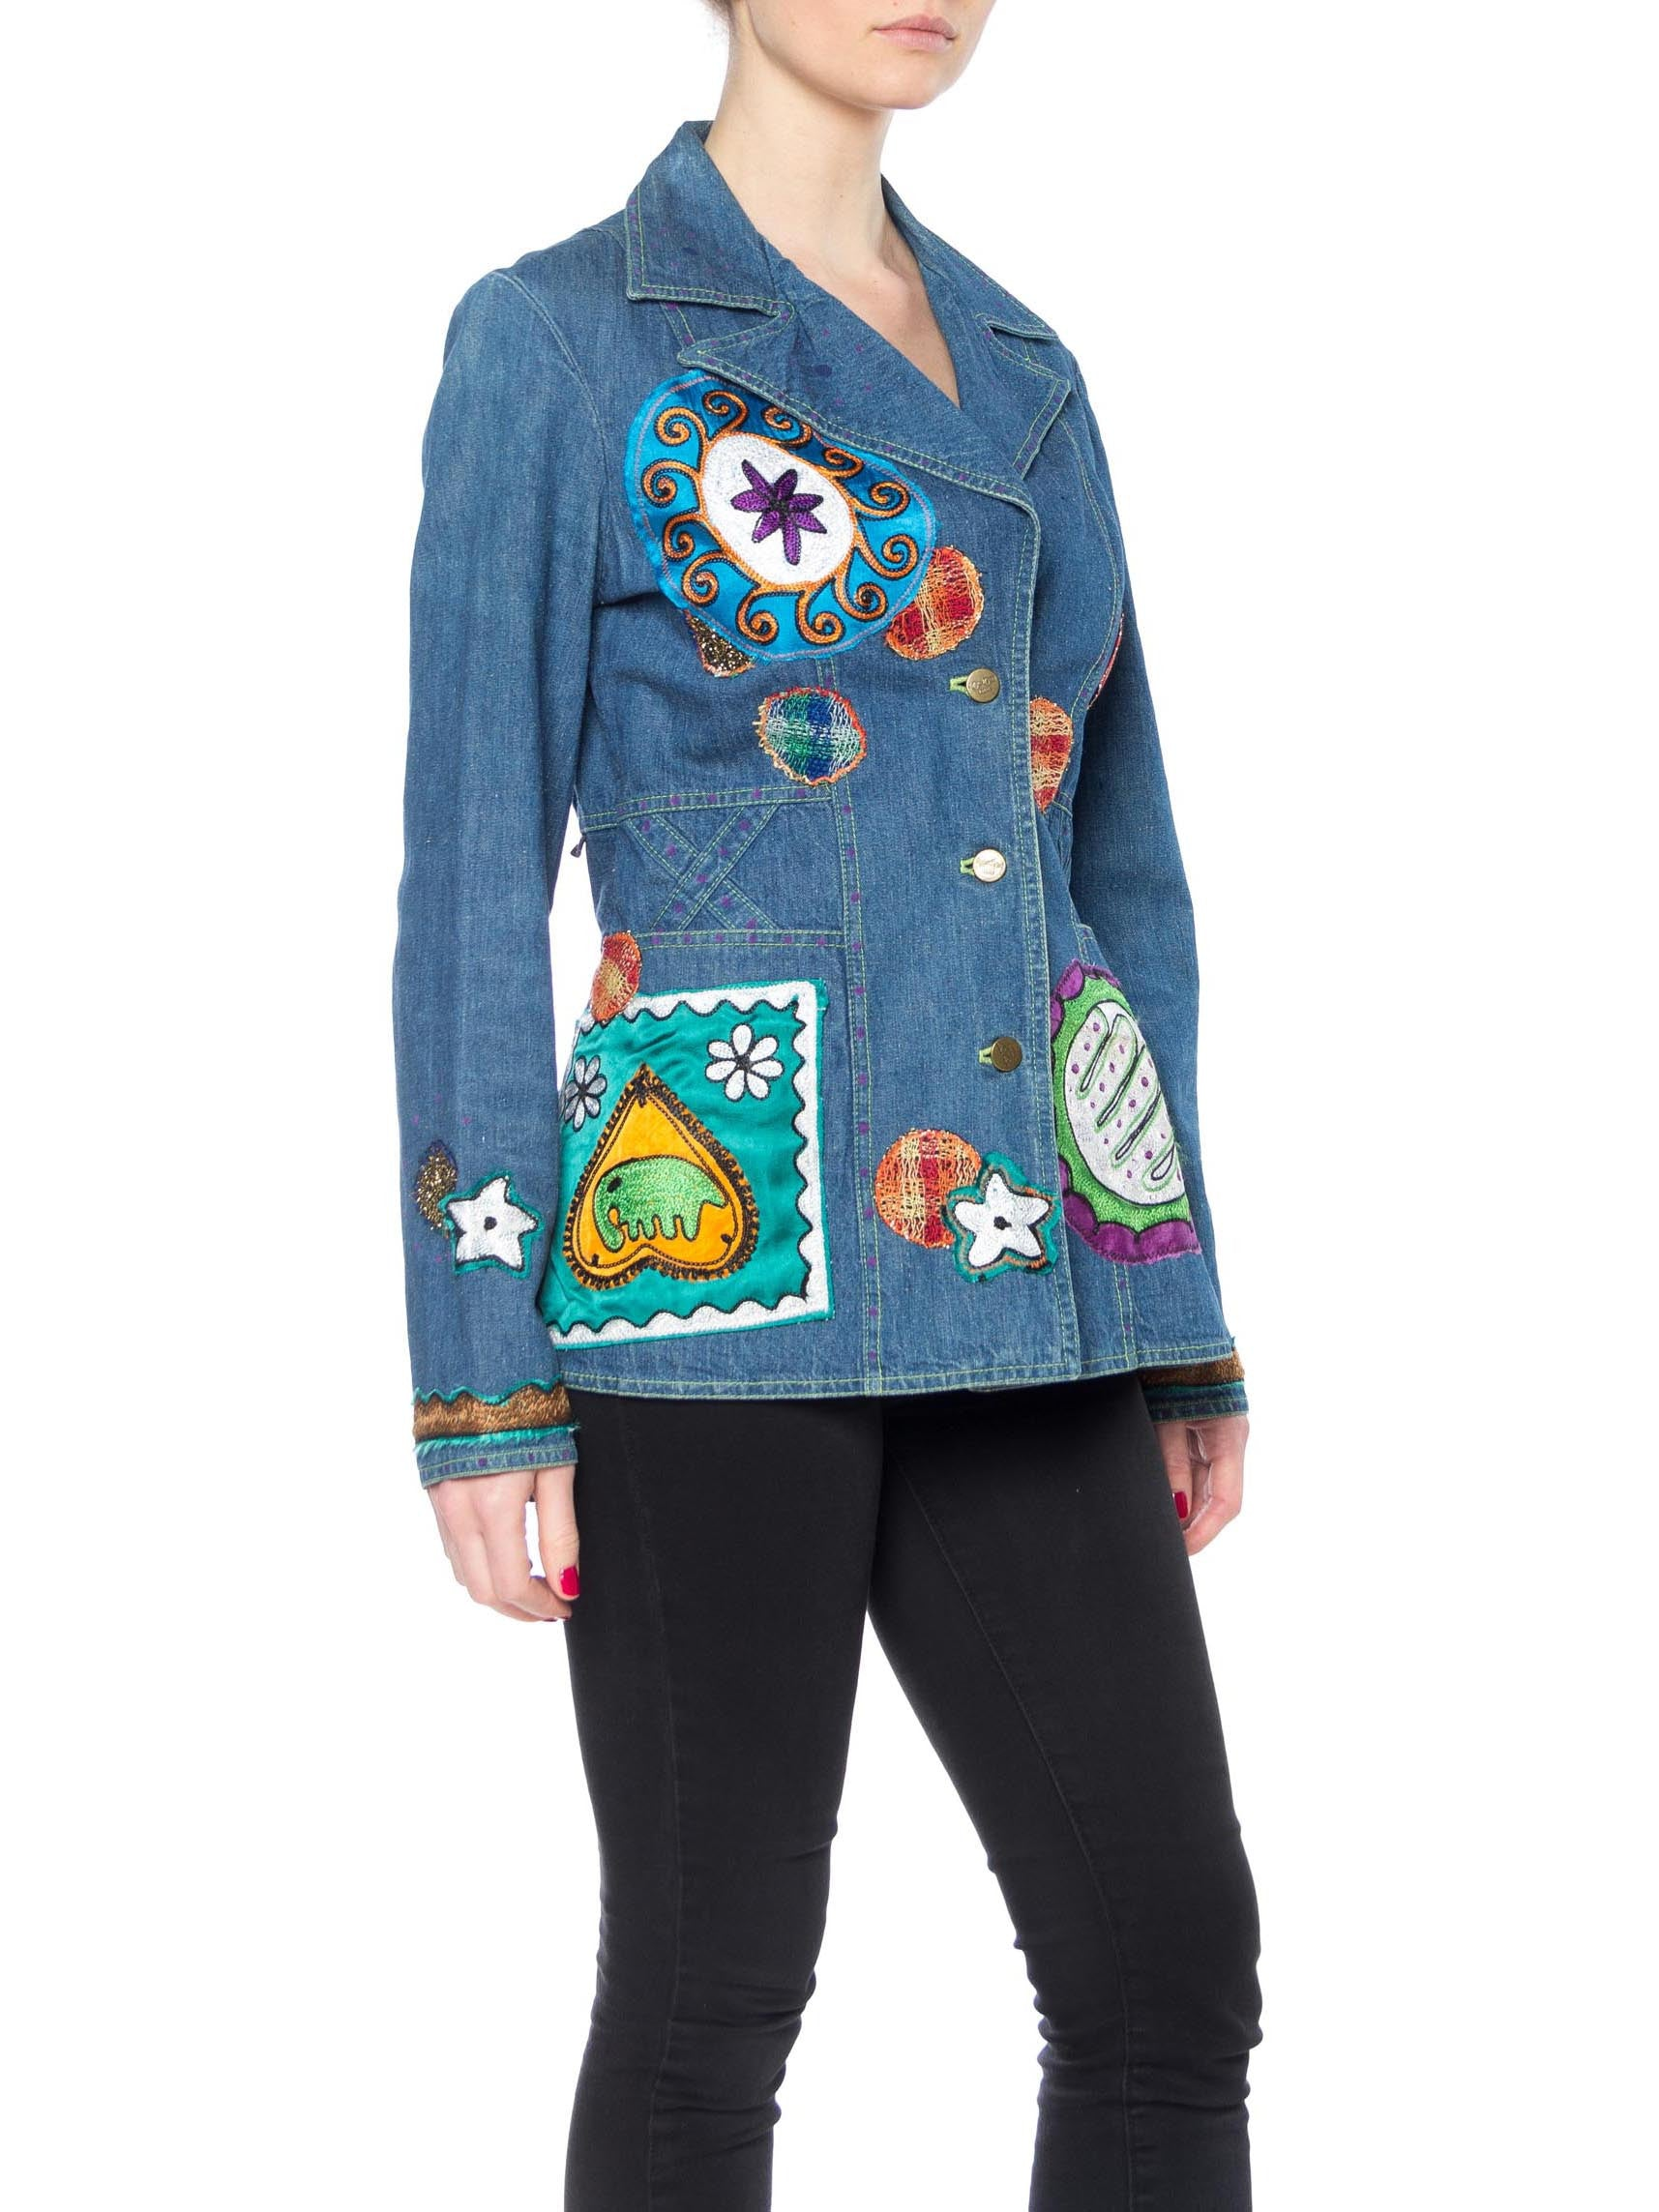 Morphew Collection Cotton Denim Blazer  With Multicolor Embroidery & Patches